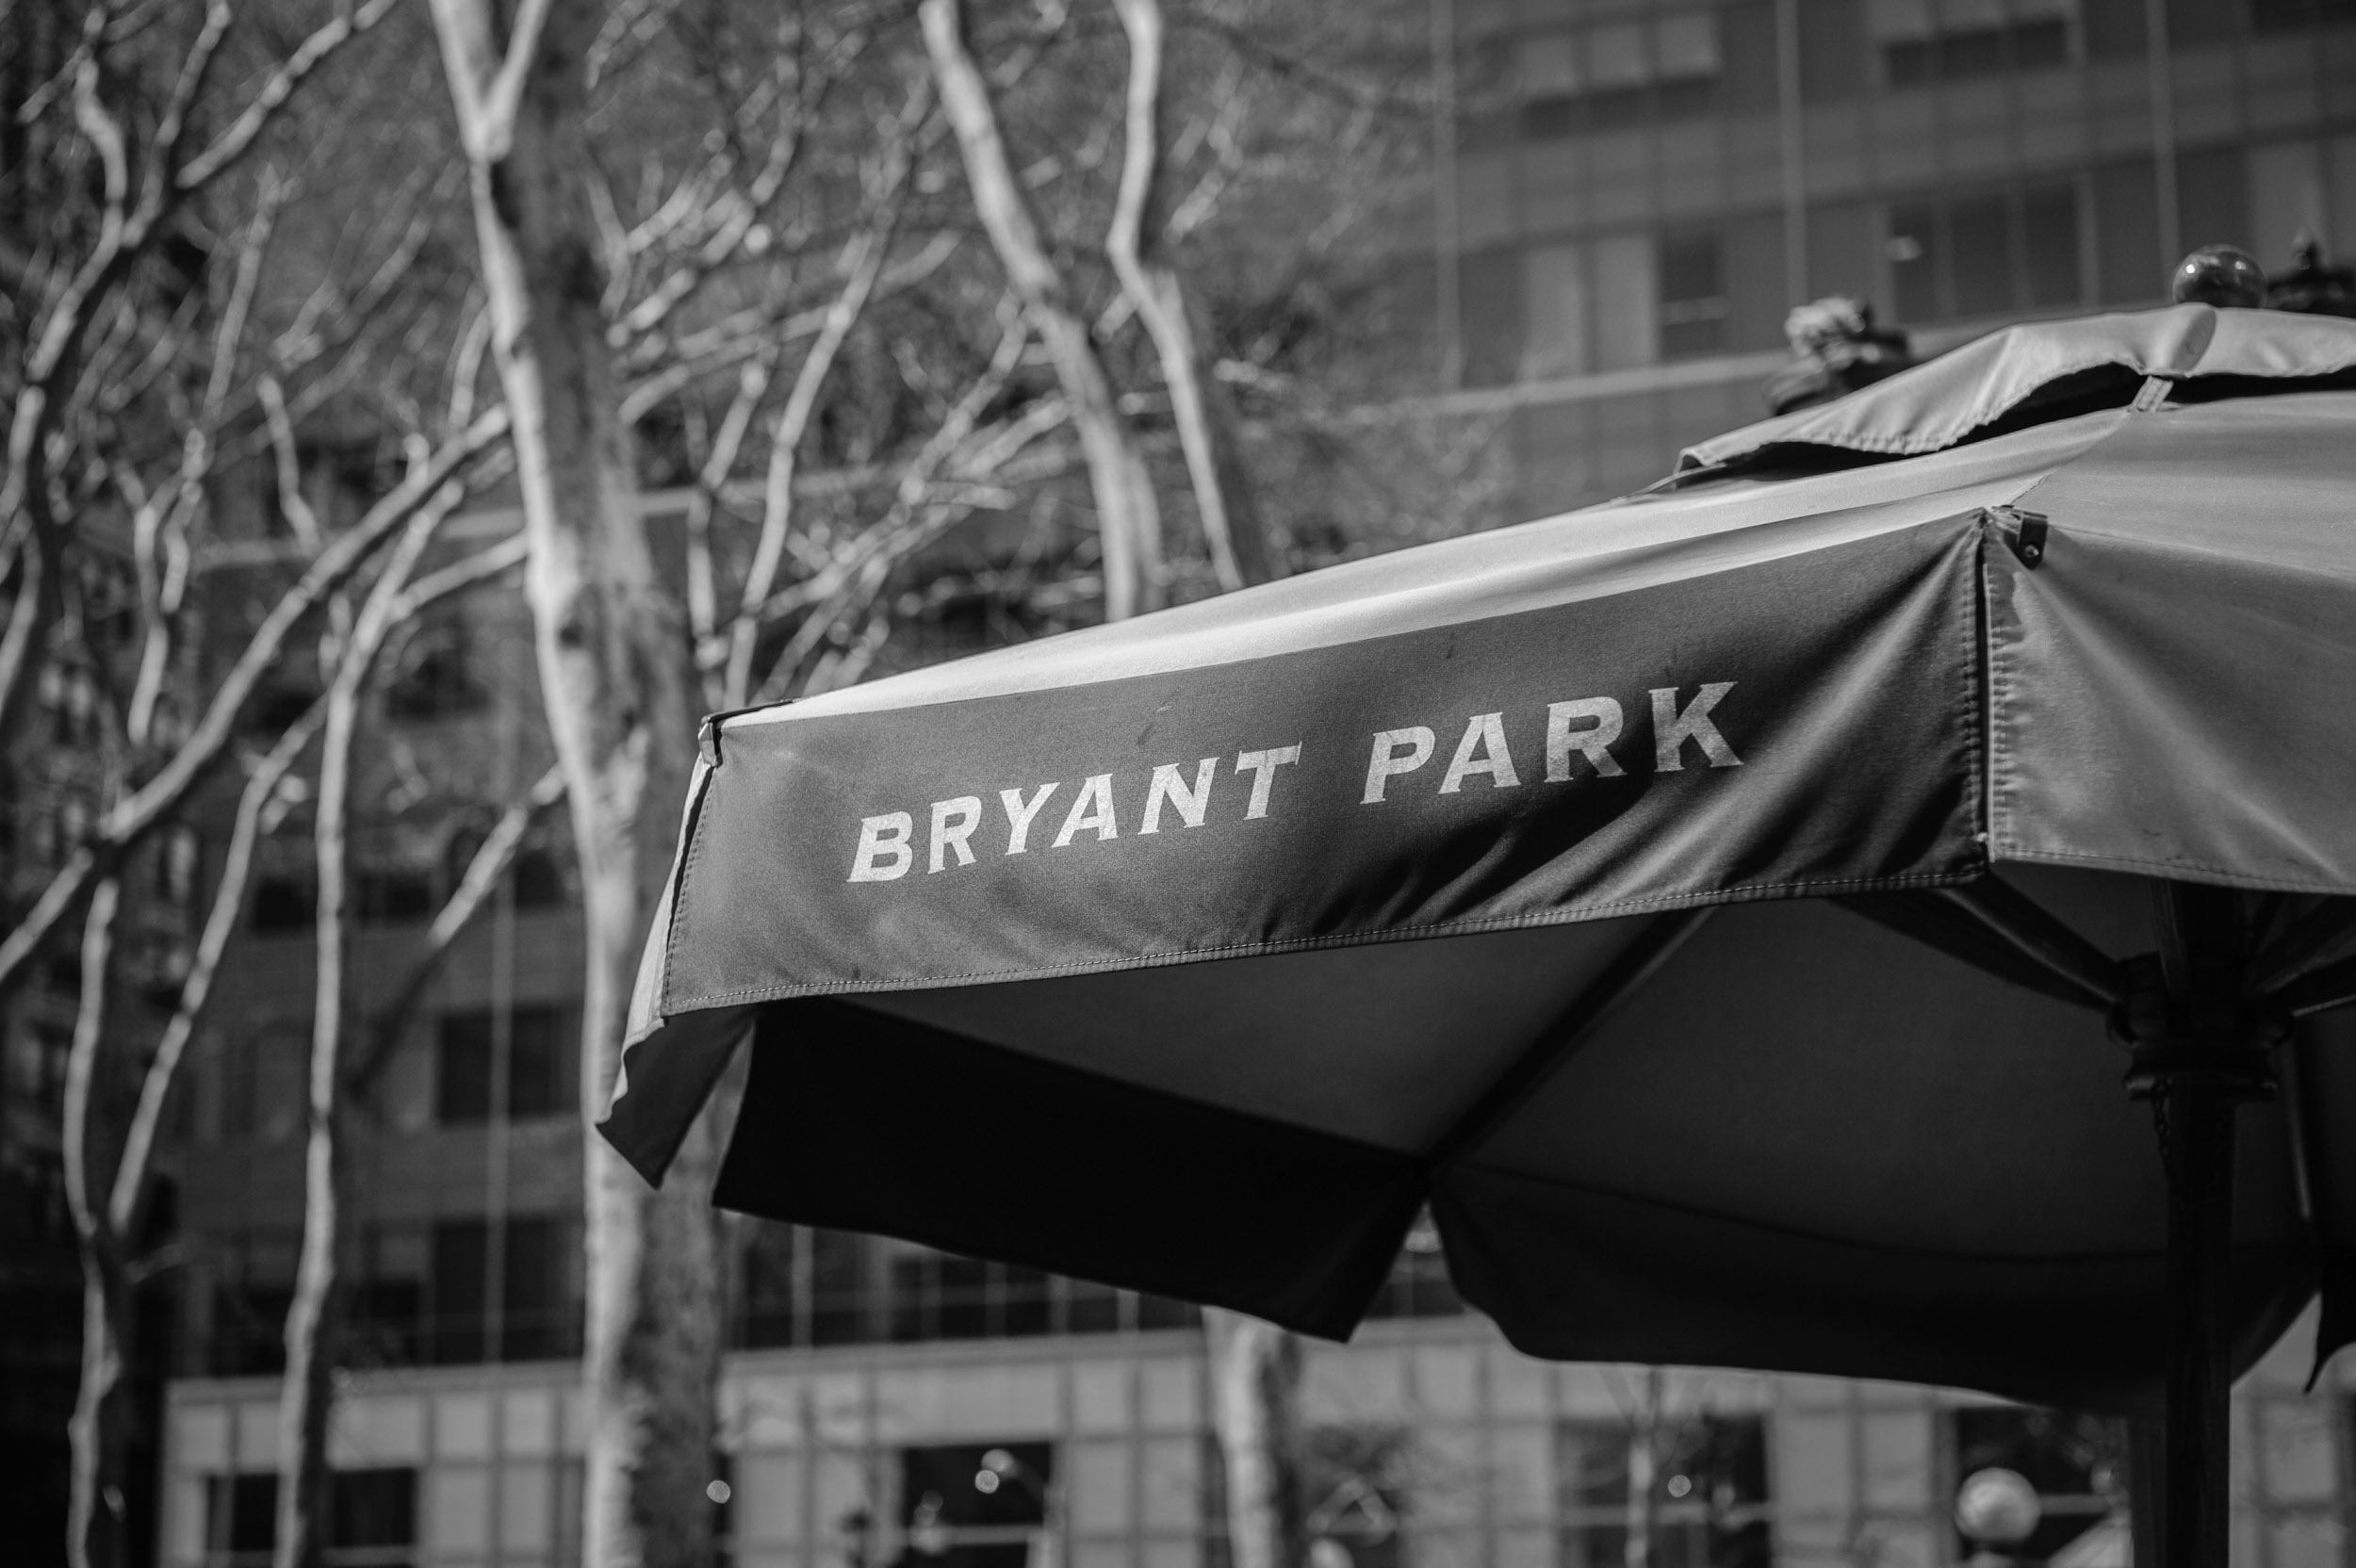 pam_korman_photography-ping-pong_diplomacy-bryant_park_new_york_city18.jpg